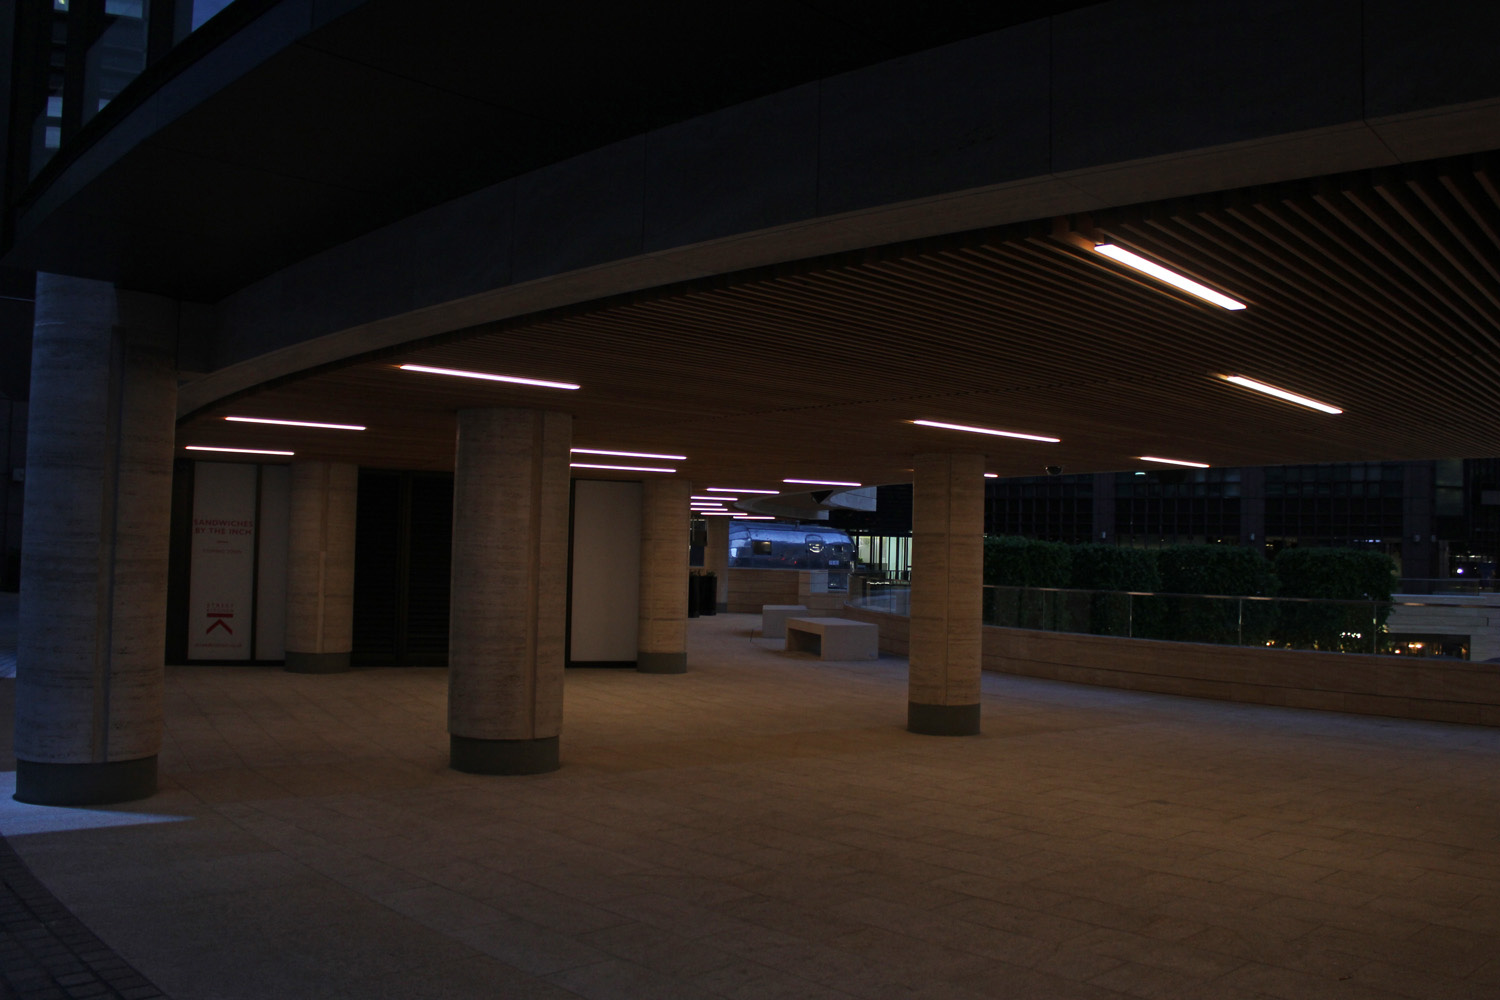 bespoke lighting broadgate circle lightlab 5